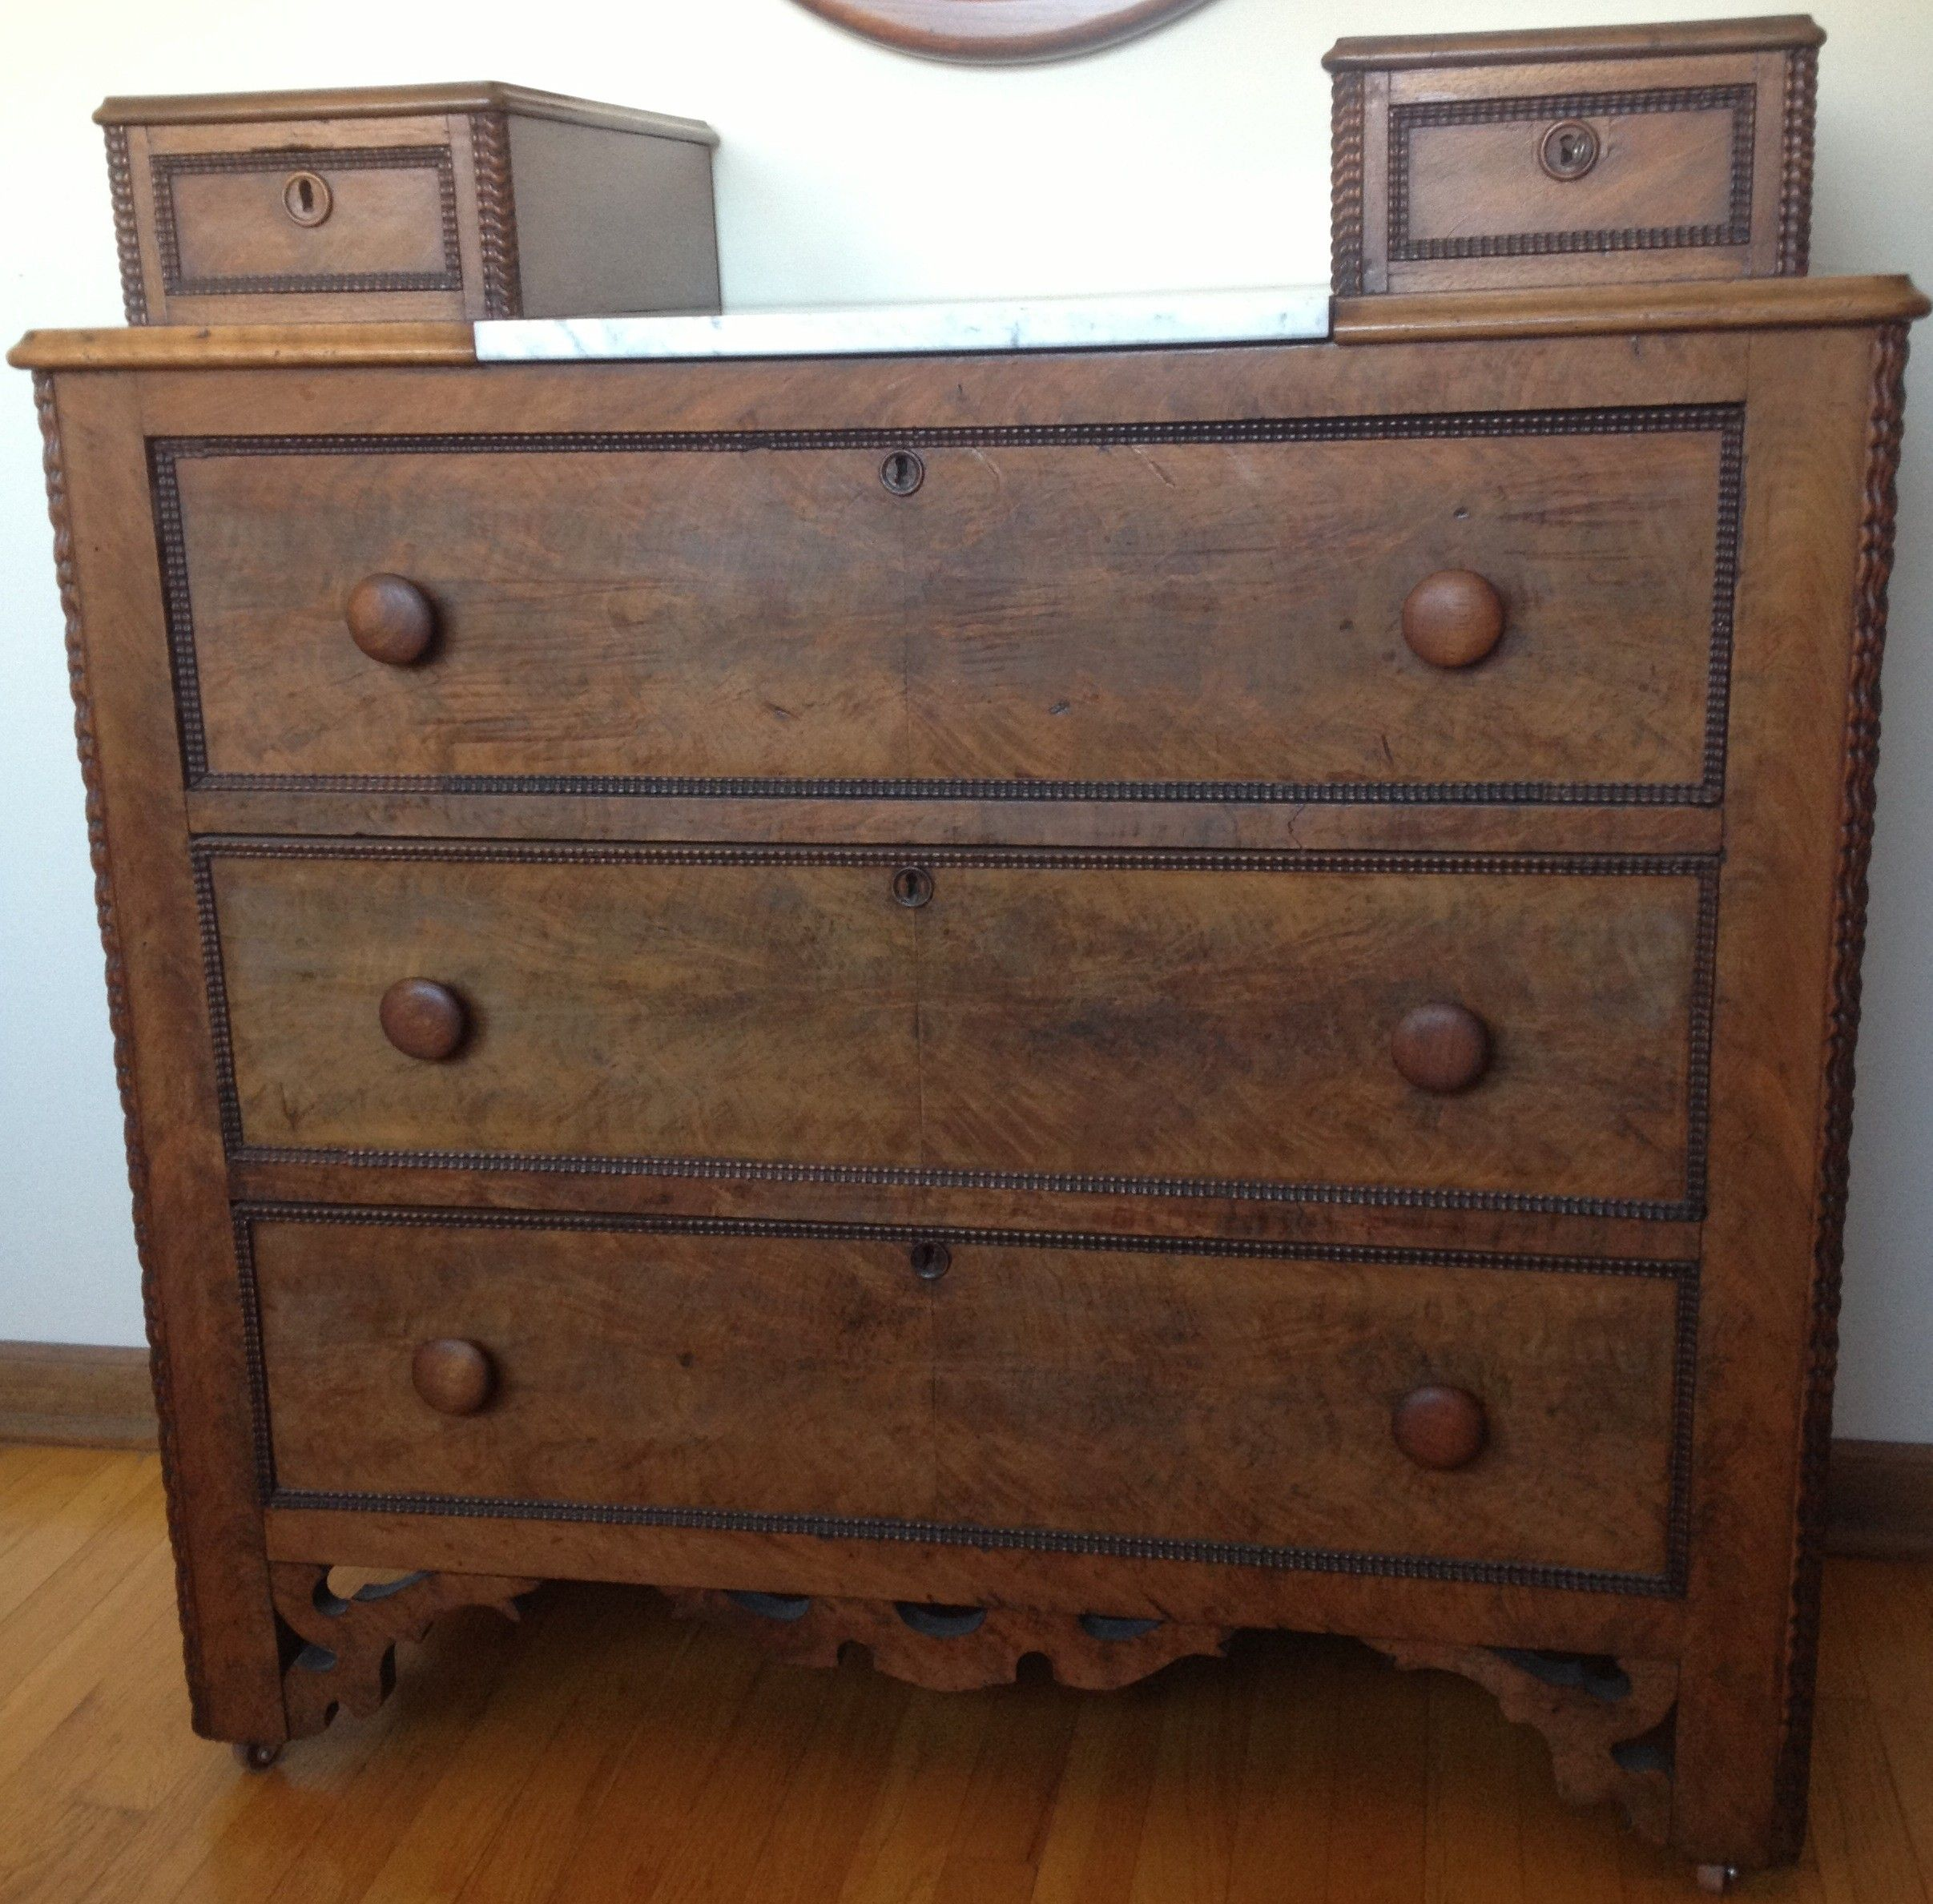 Antique Victorian Dresser Chest $250 Chicago furnishly